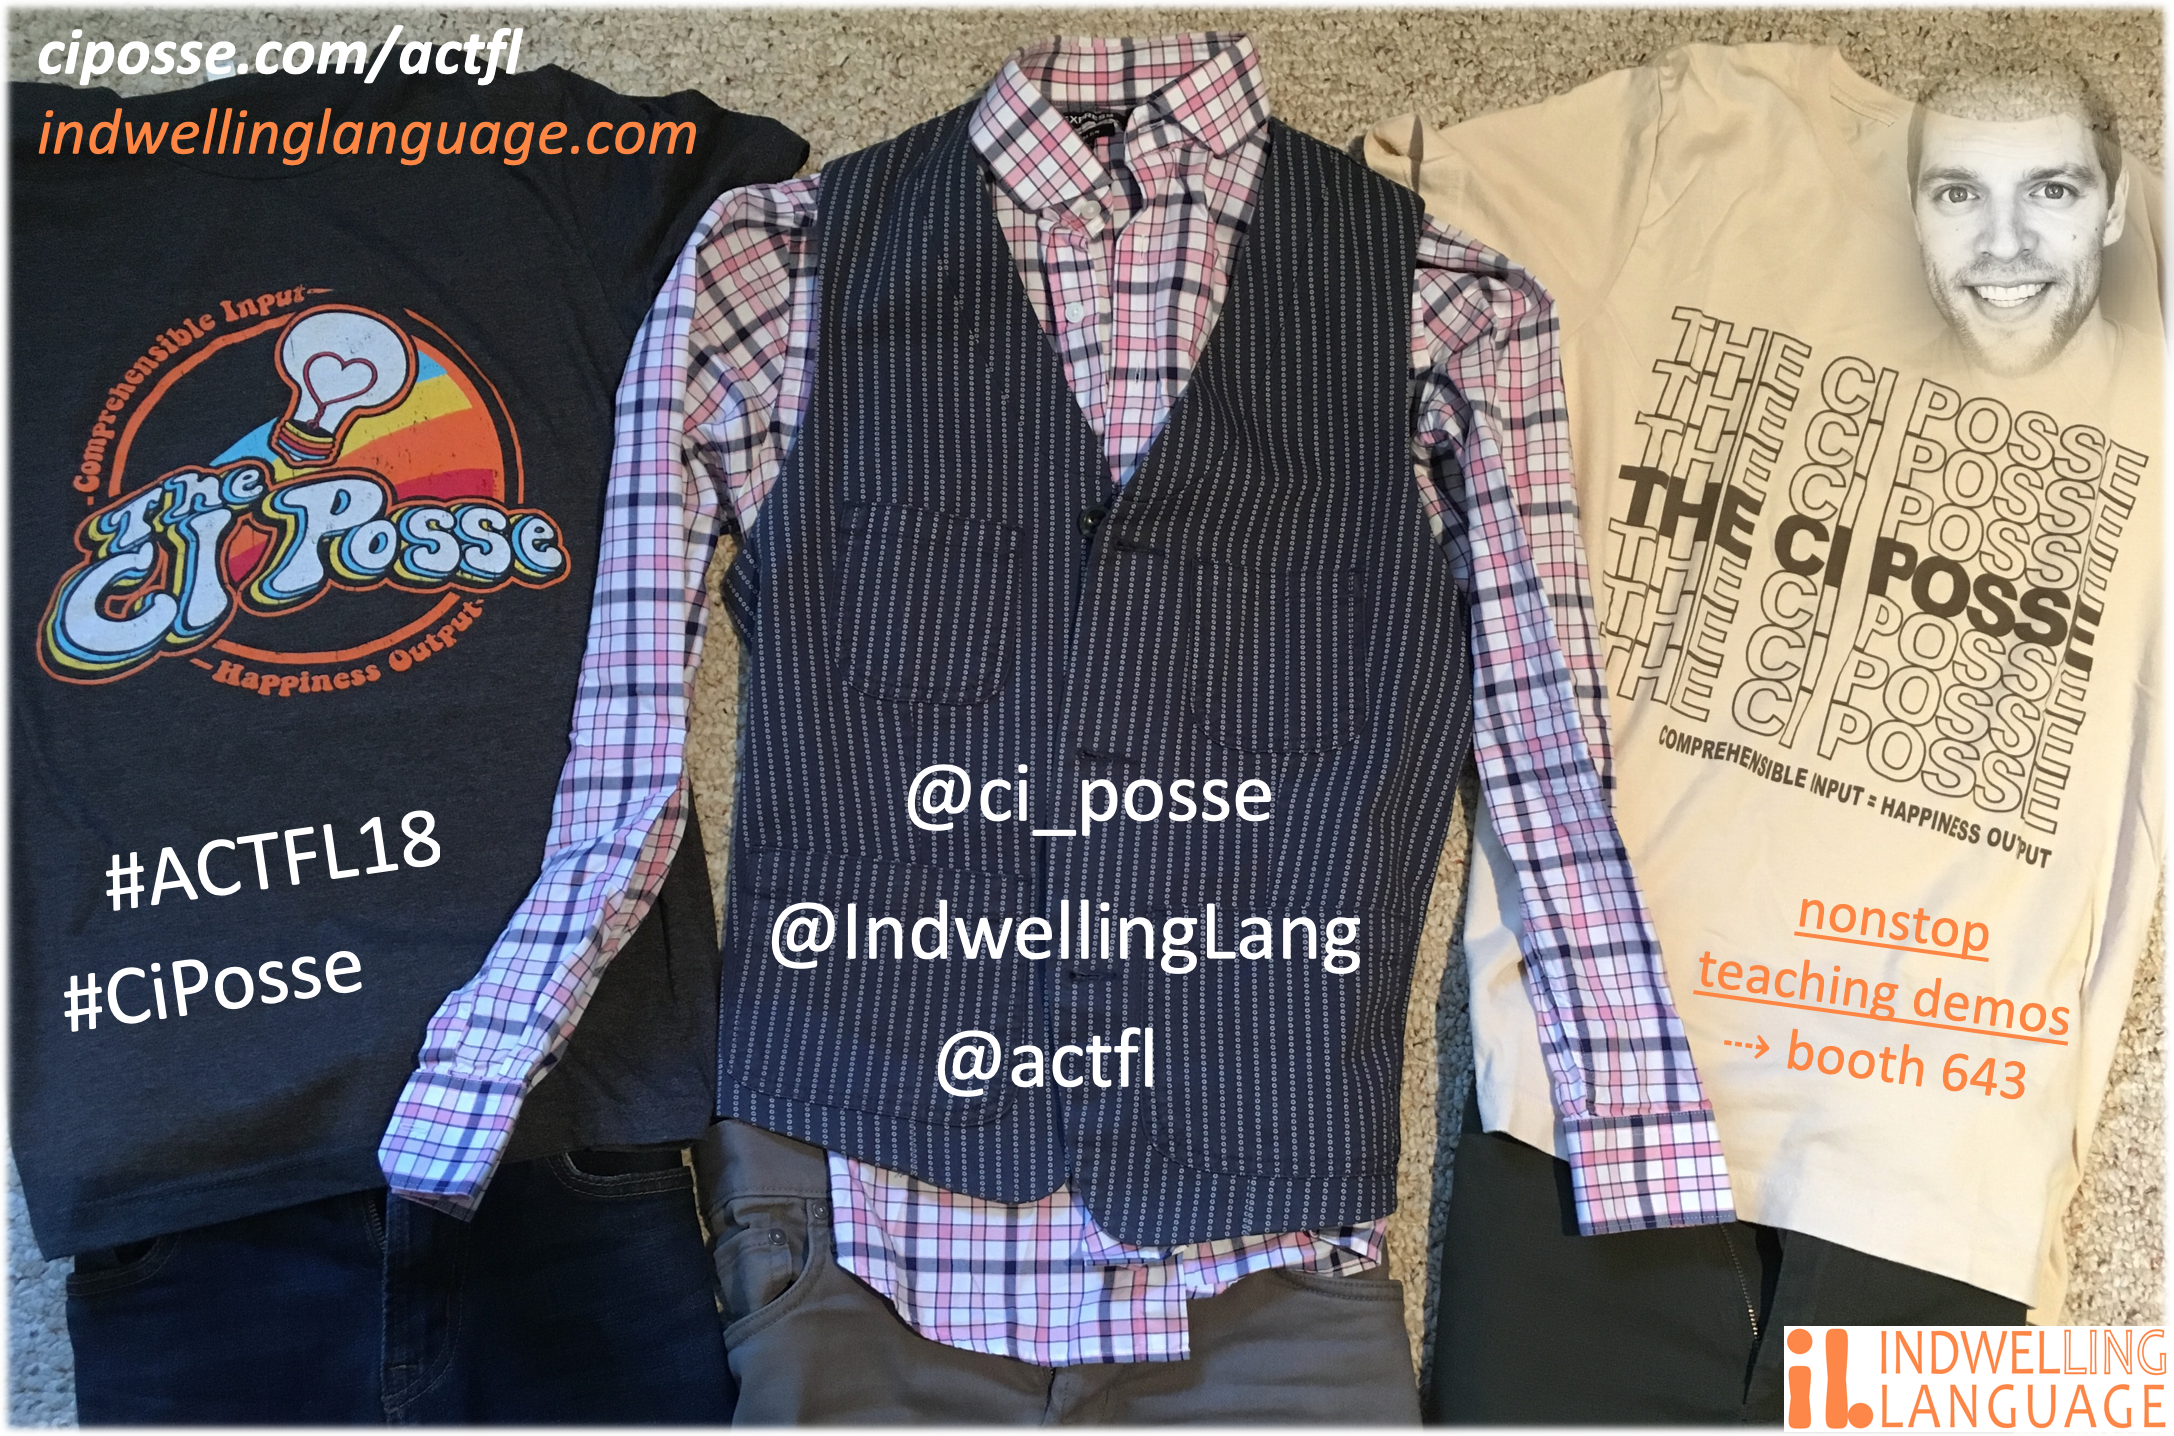 actfl 2018 ci posse shirts, links, and hashtags